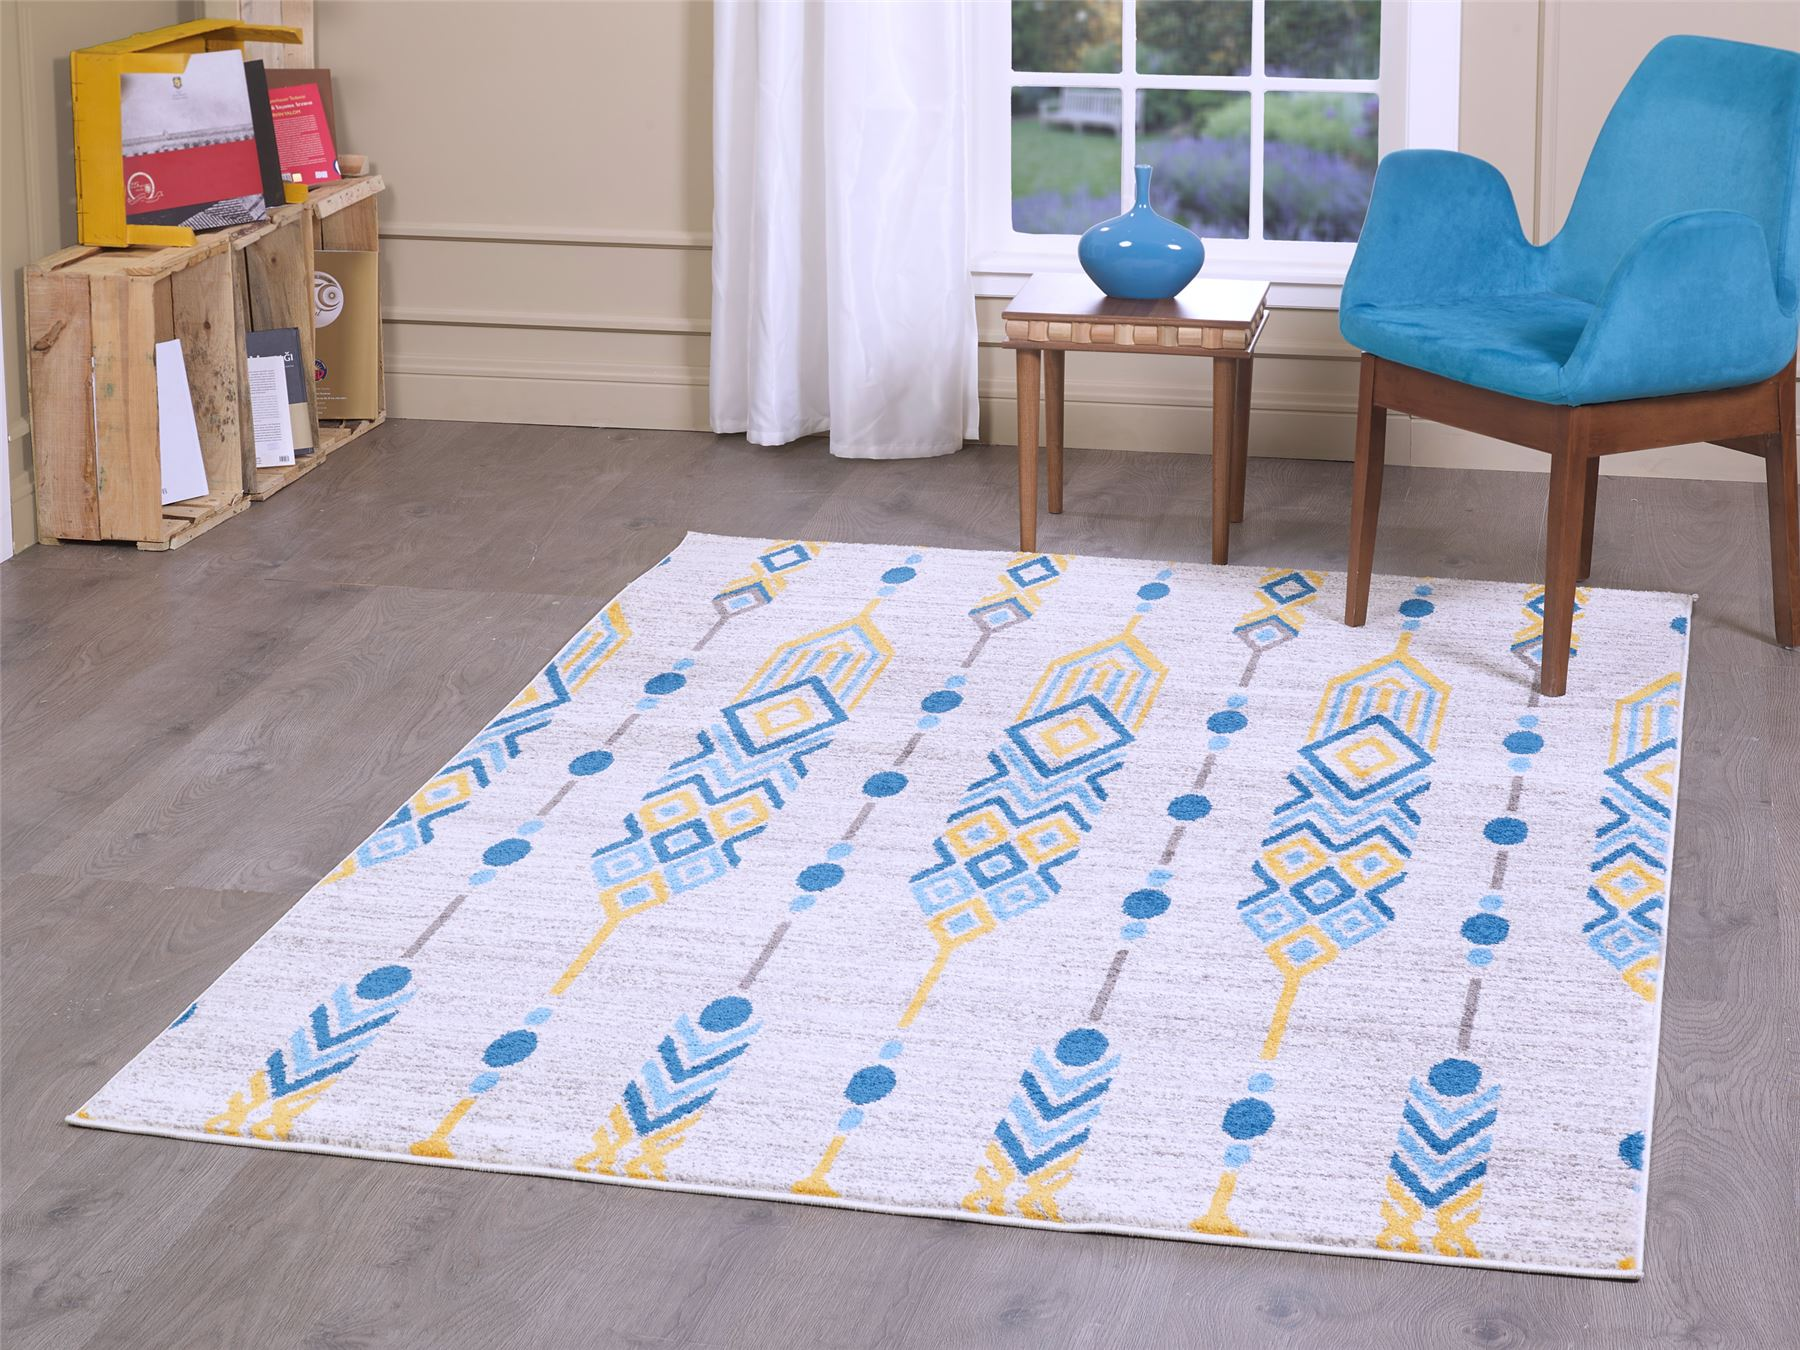 Details About A2z Rug Retro Geometric Rugs Aztec Pattern Modern Lounge Bedroom Area Carpets